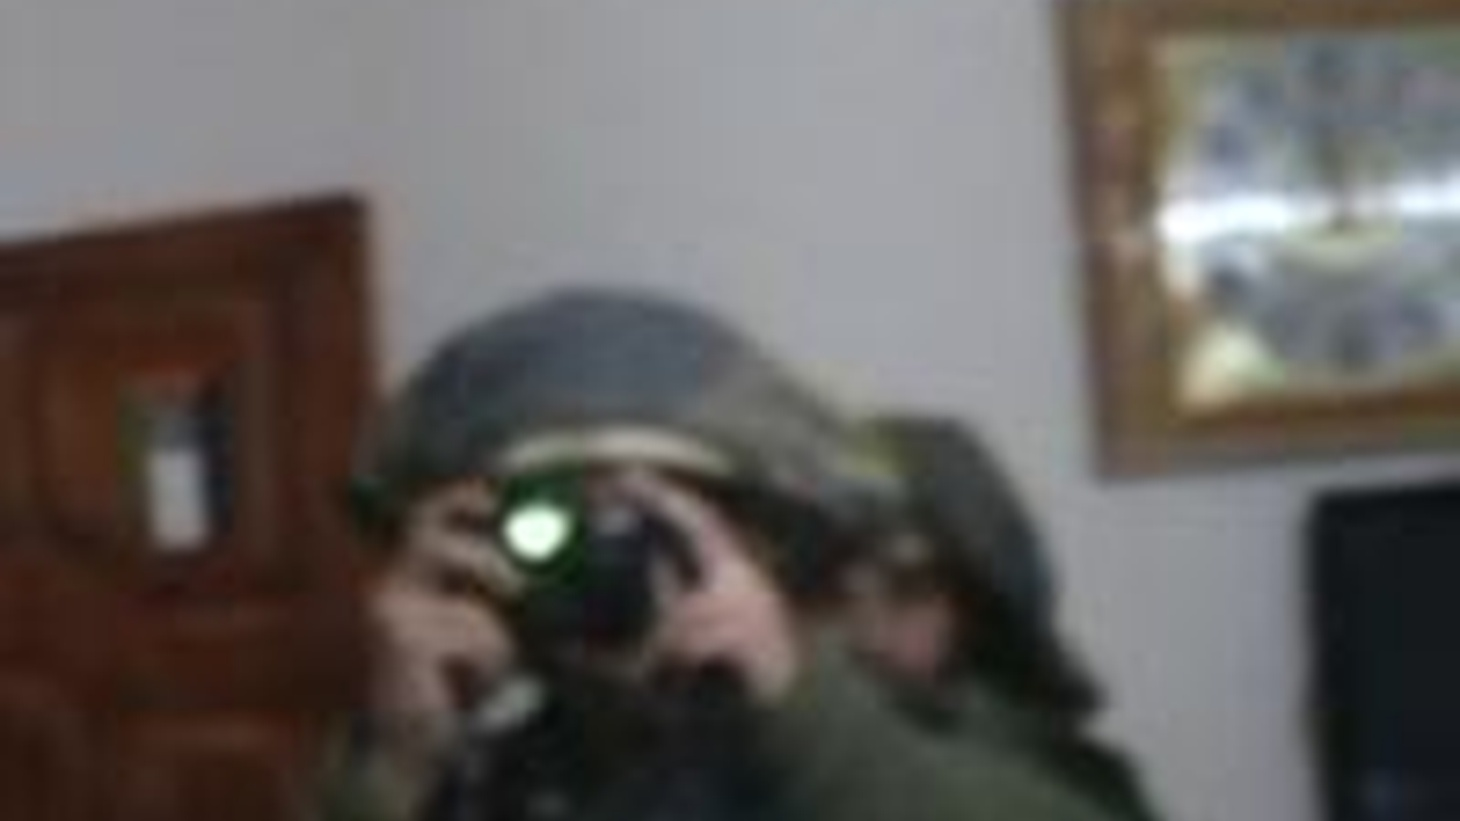 Israeli soldiers take snapshots of Palestinian boys, one house at a time, in the middle of the night. This and other stories where the picture gives you the upper hand.